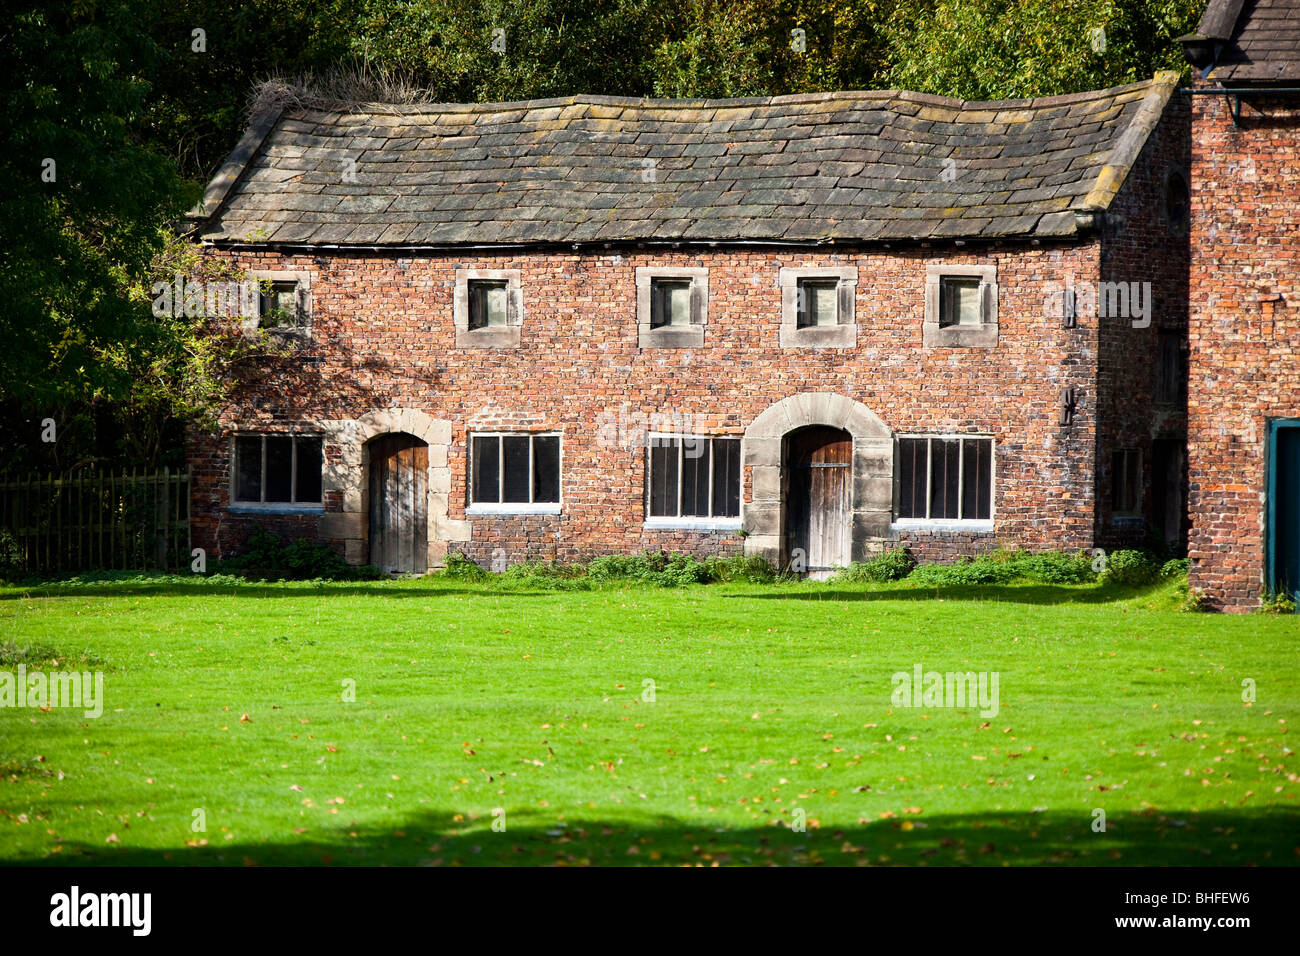 Barn cottages in the grounds of Dunham Massey Hall - Stock Image